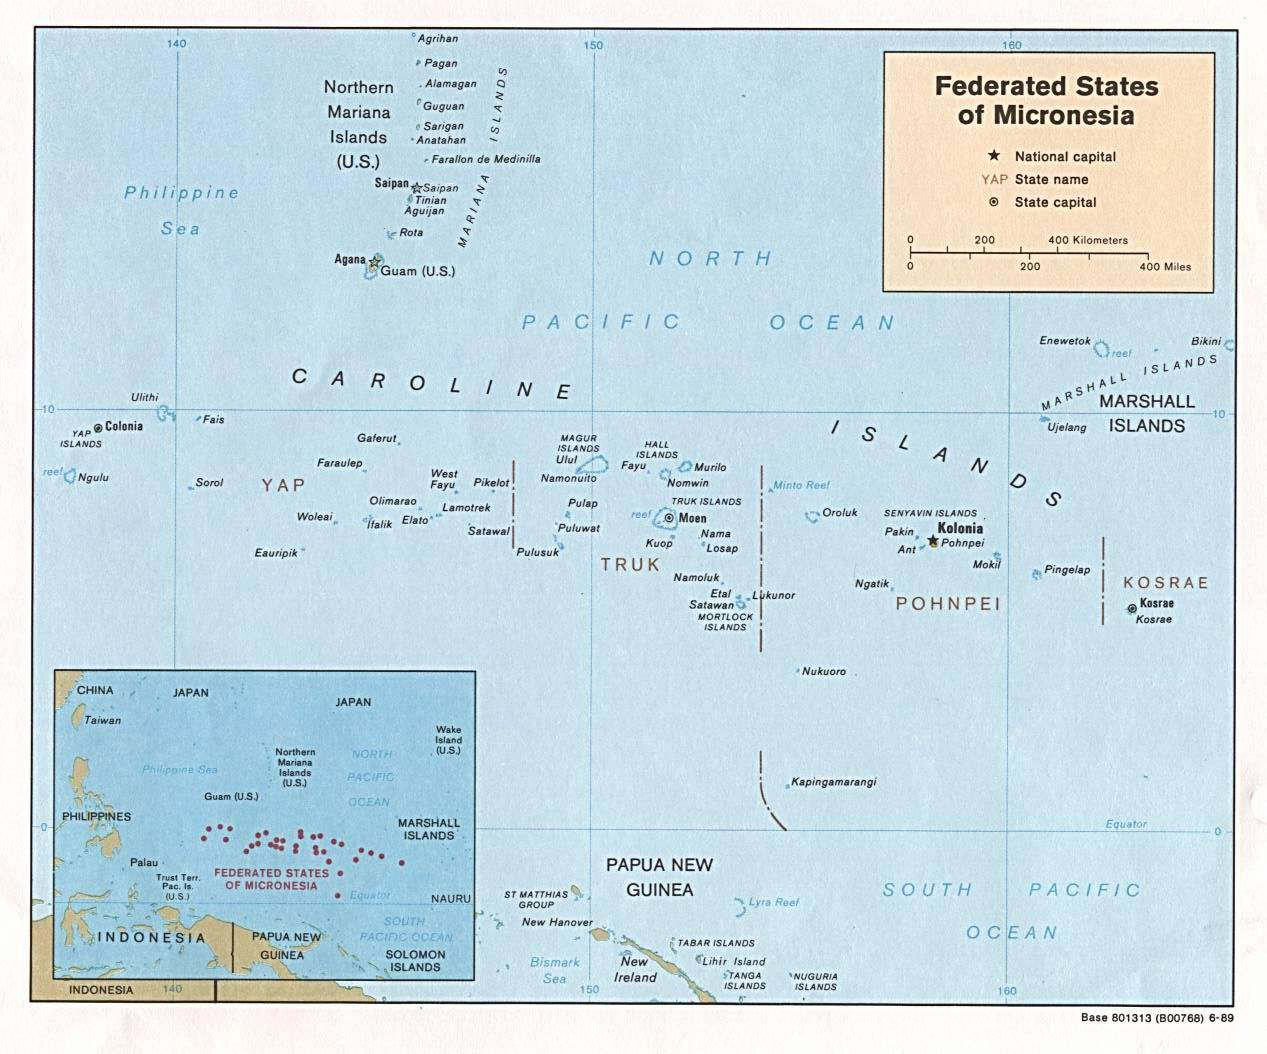 Federated States of Micronesia, Political